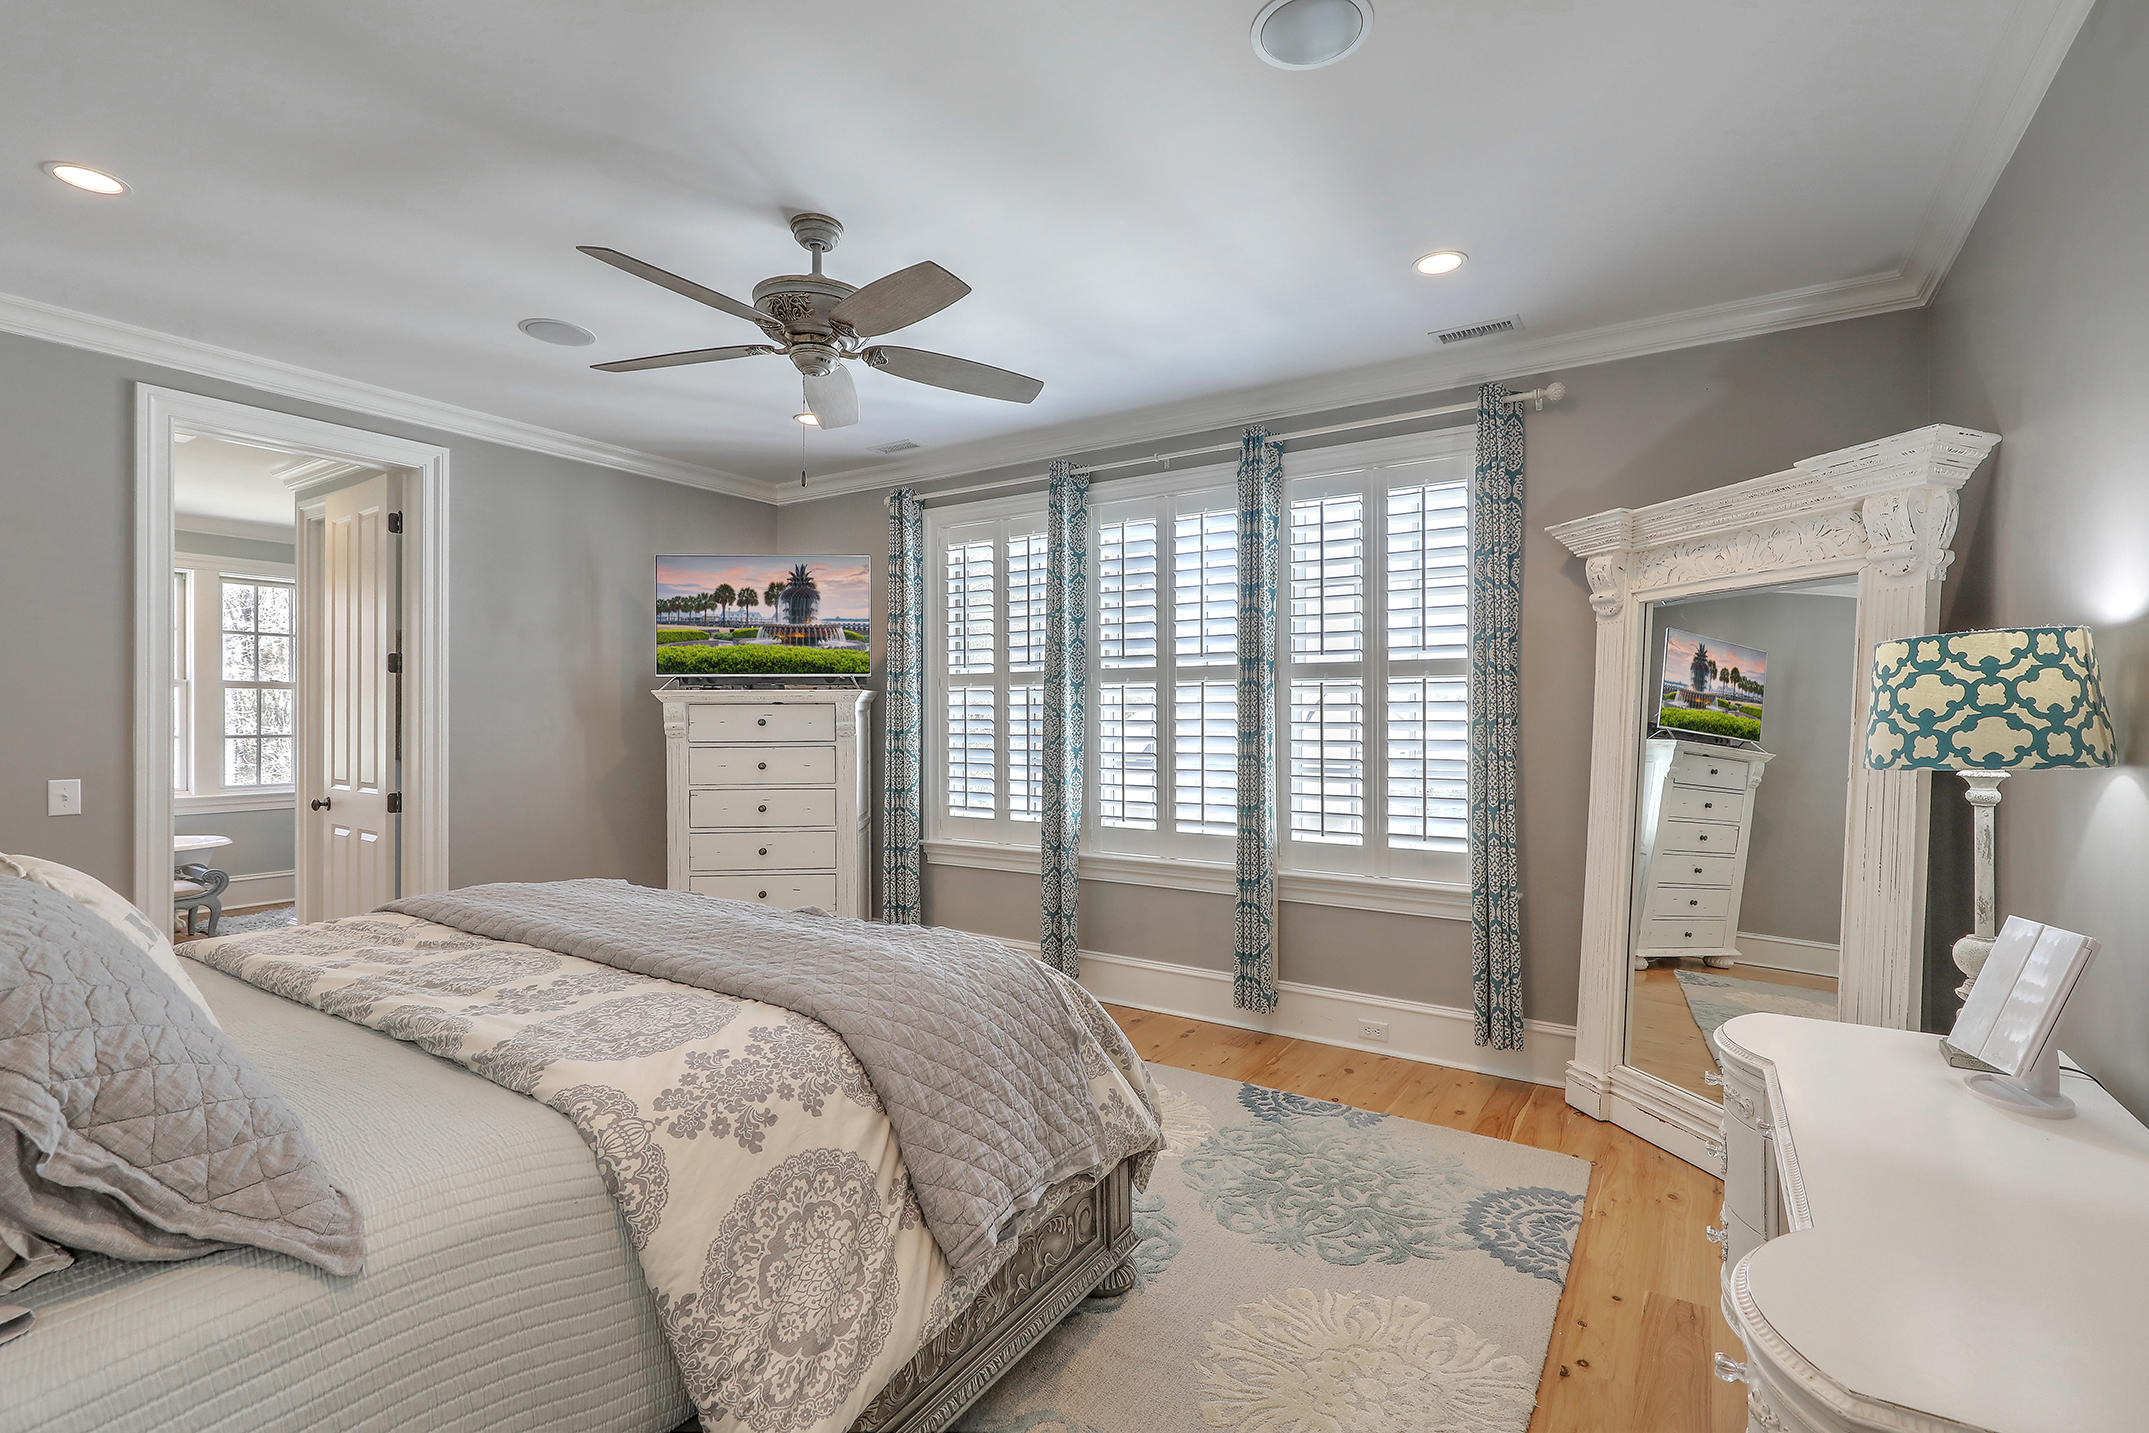 Belle Hall Homes For Sale - 716 Stucco, Mount Pleasant, SC - 13